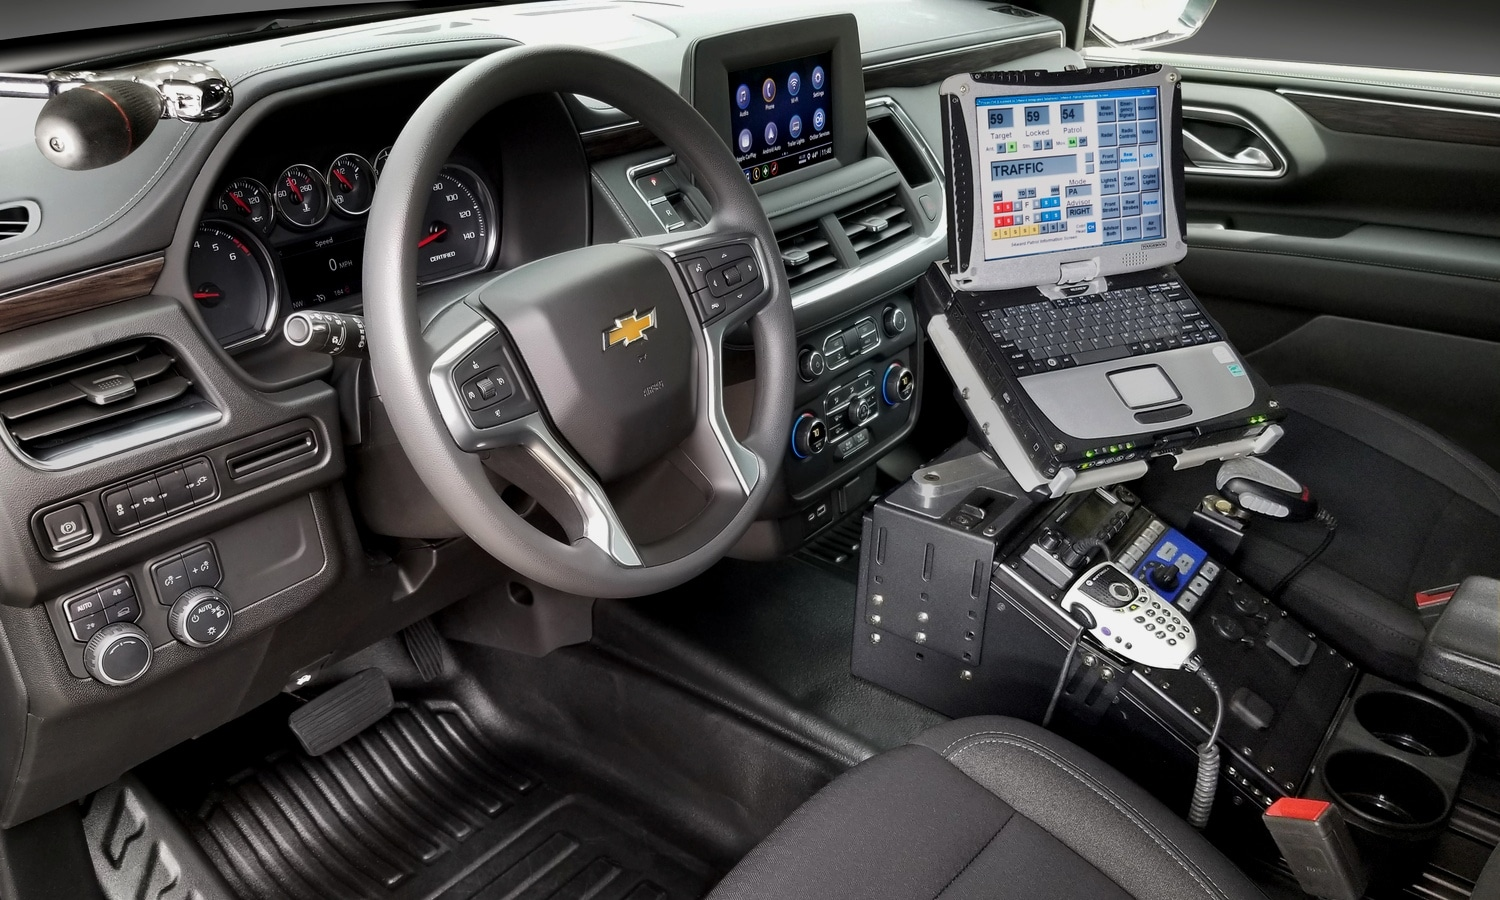 Chevrolet Tahoe Police Pursuit Vehicle (PPV) 2021 inside